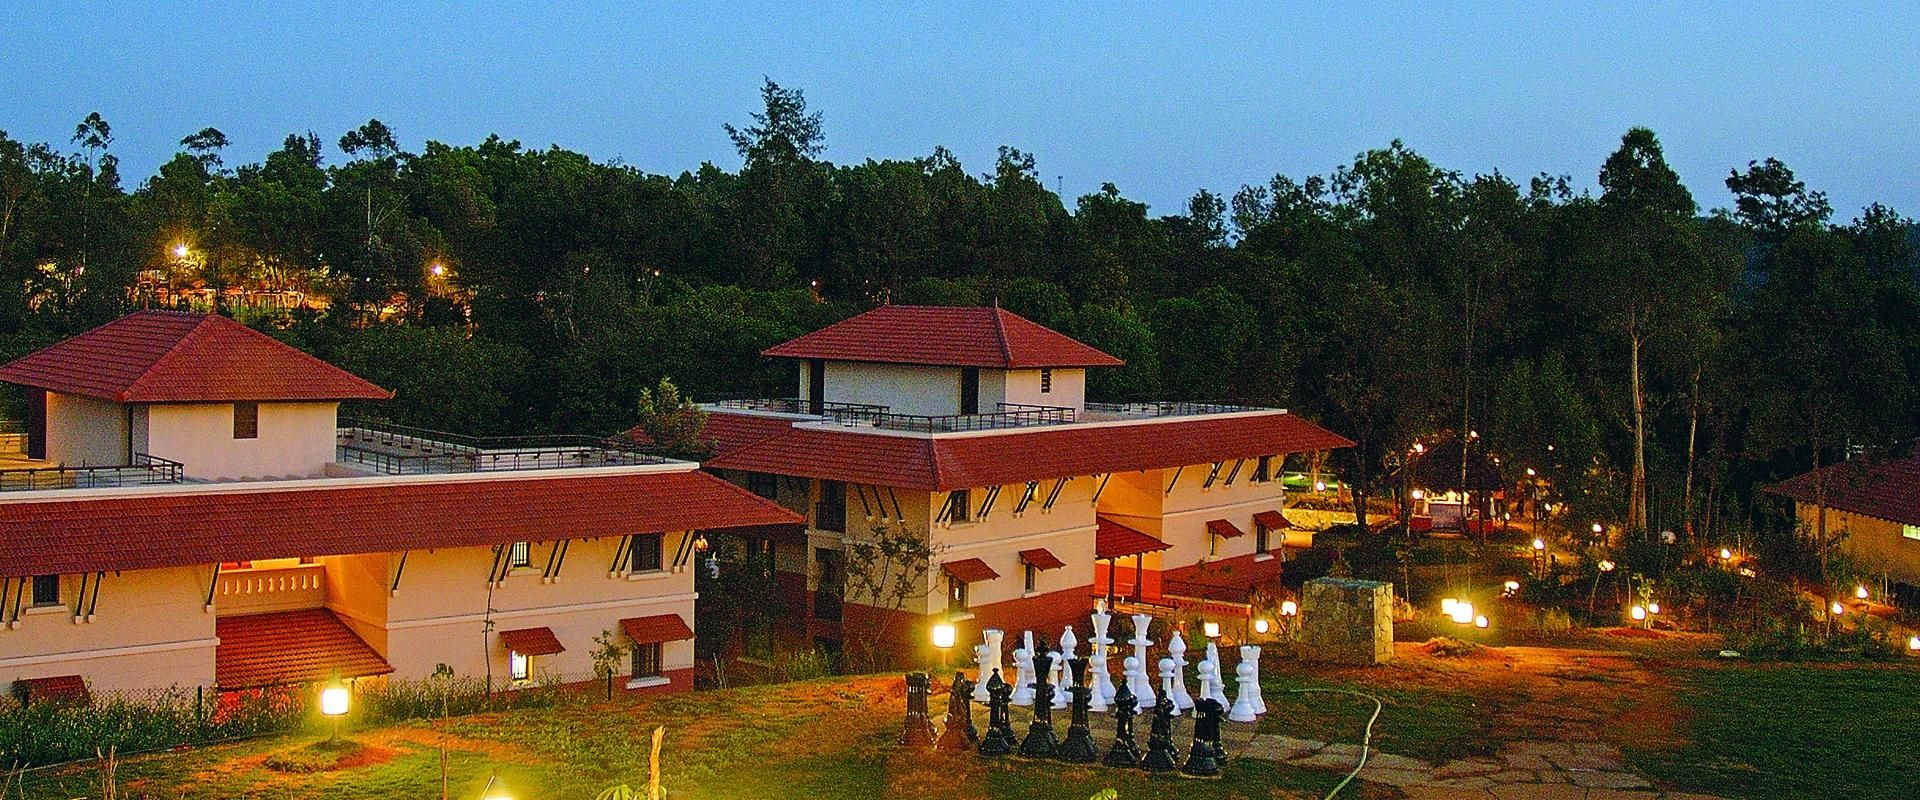 Club Mahindra Madikeri Coorg Hotel Reviews Trip Advisor Resort